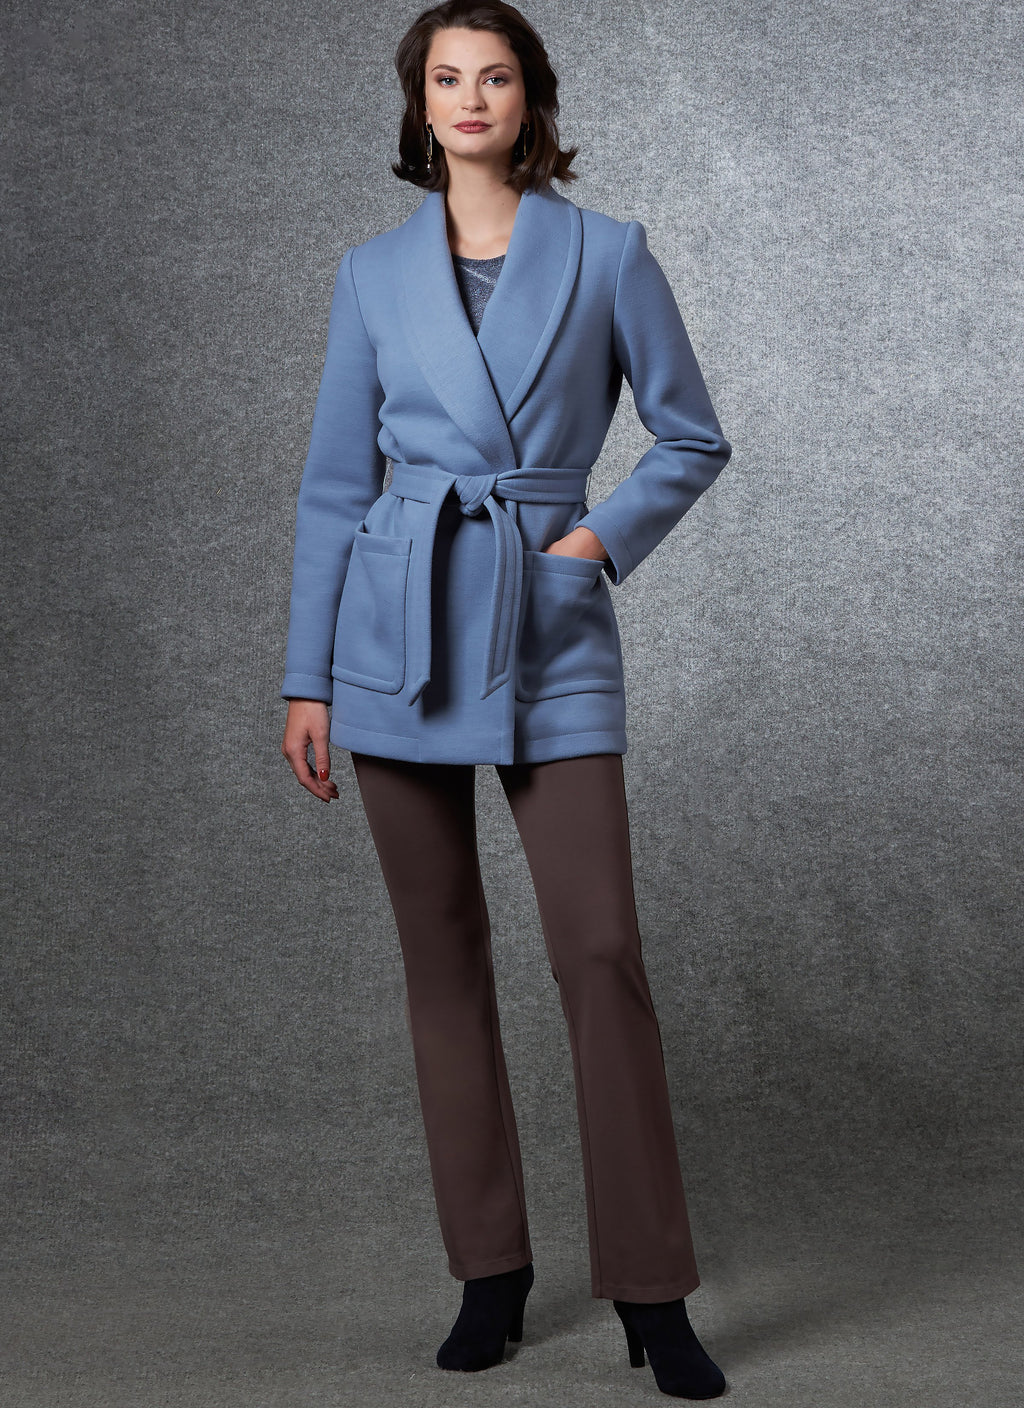 Vogue Sewing Pattern 1663 Jacket, Top and Pants | Kathryn Brenne